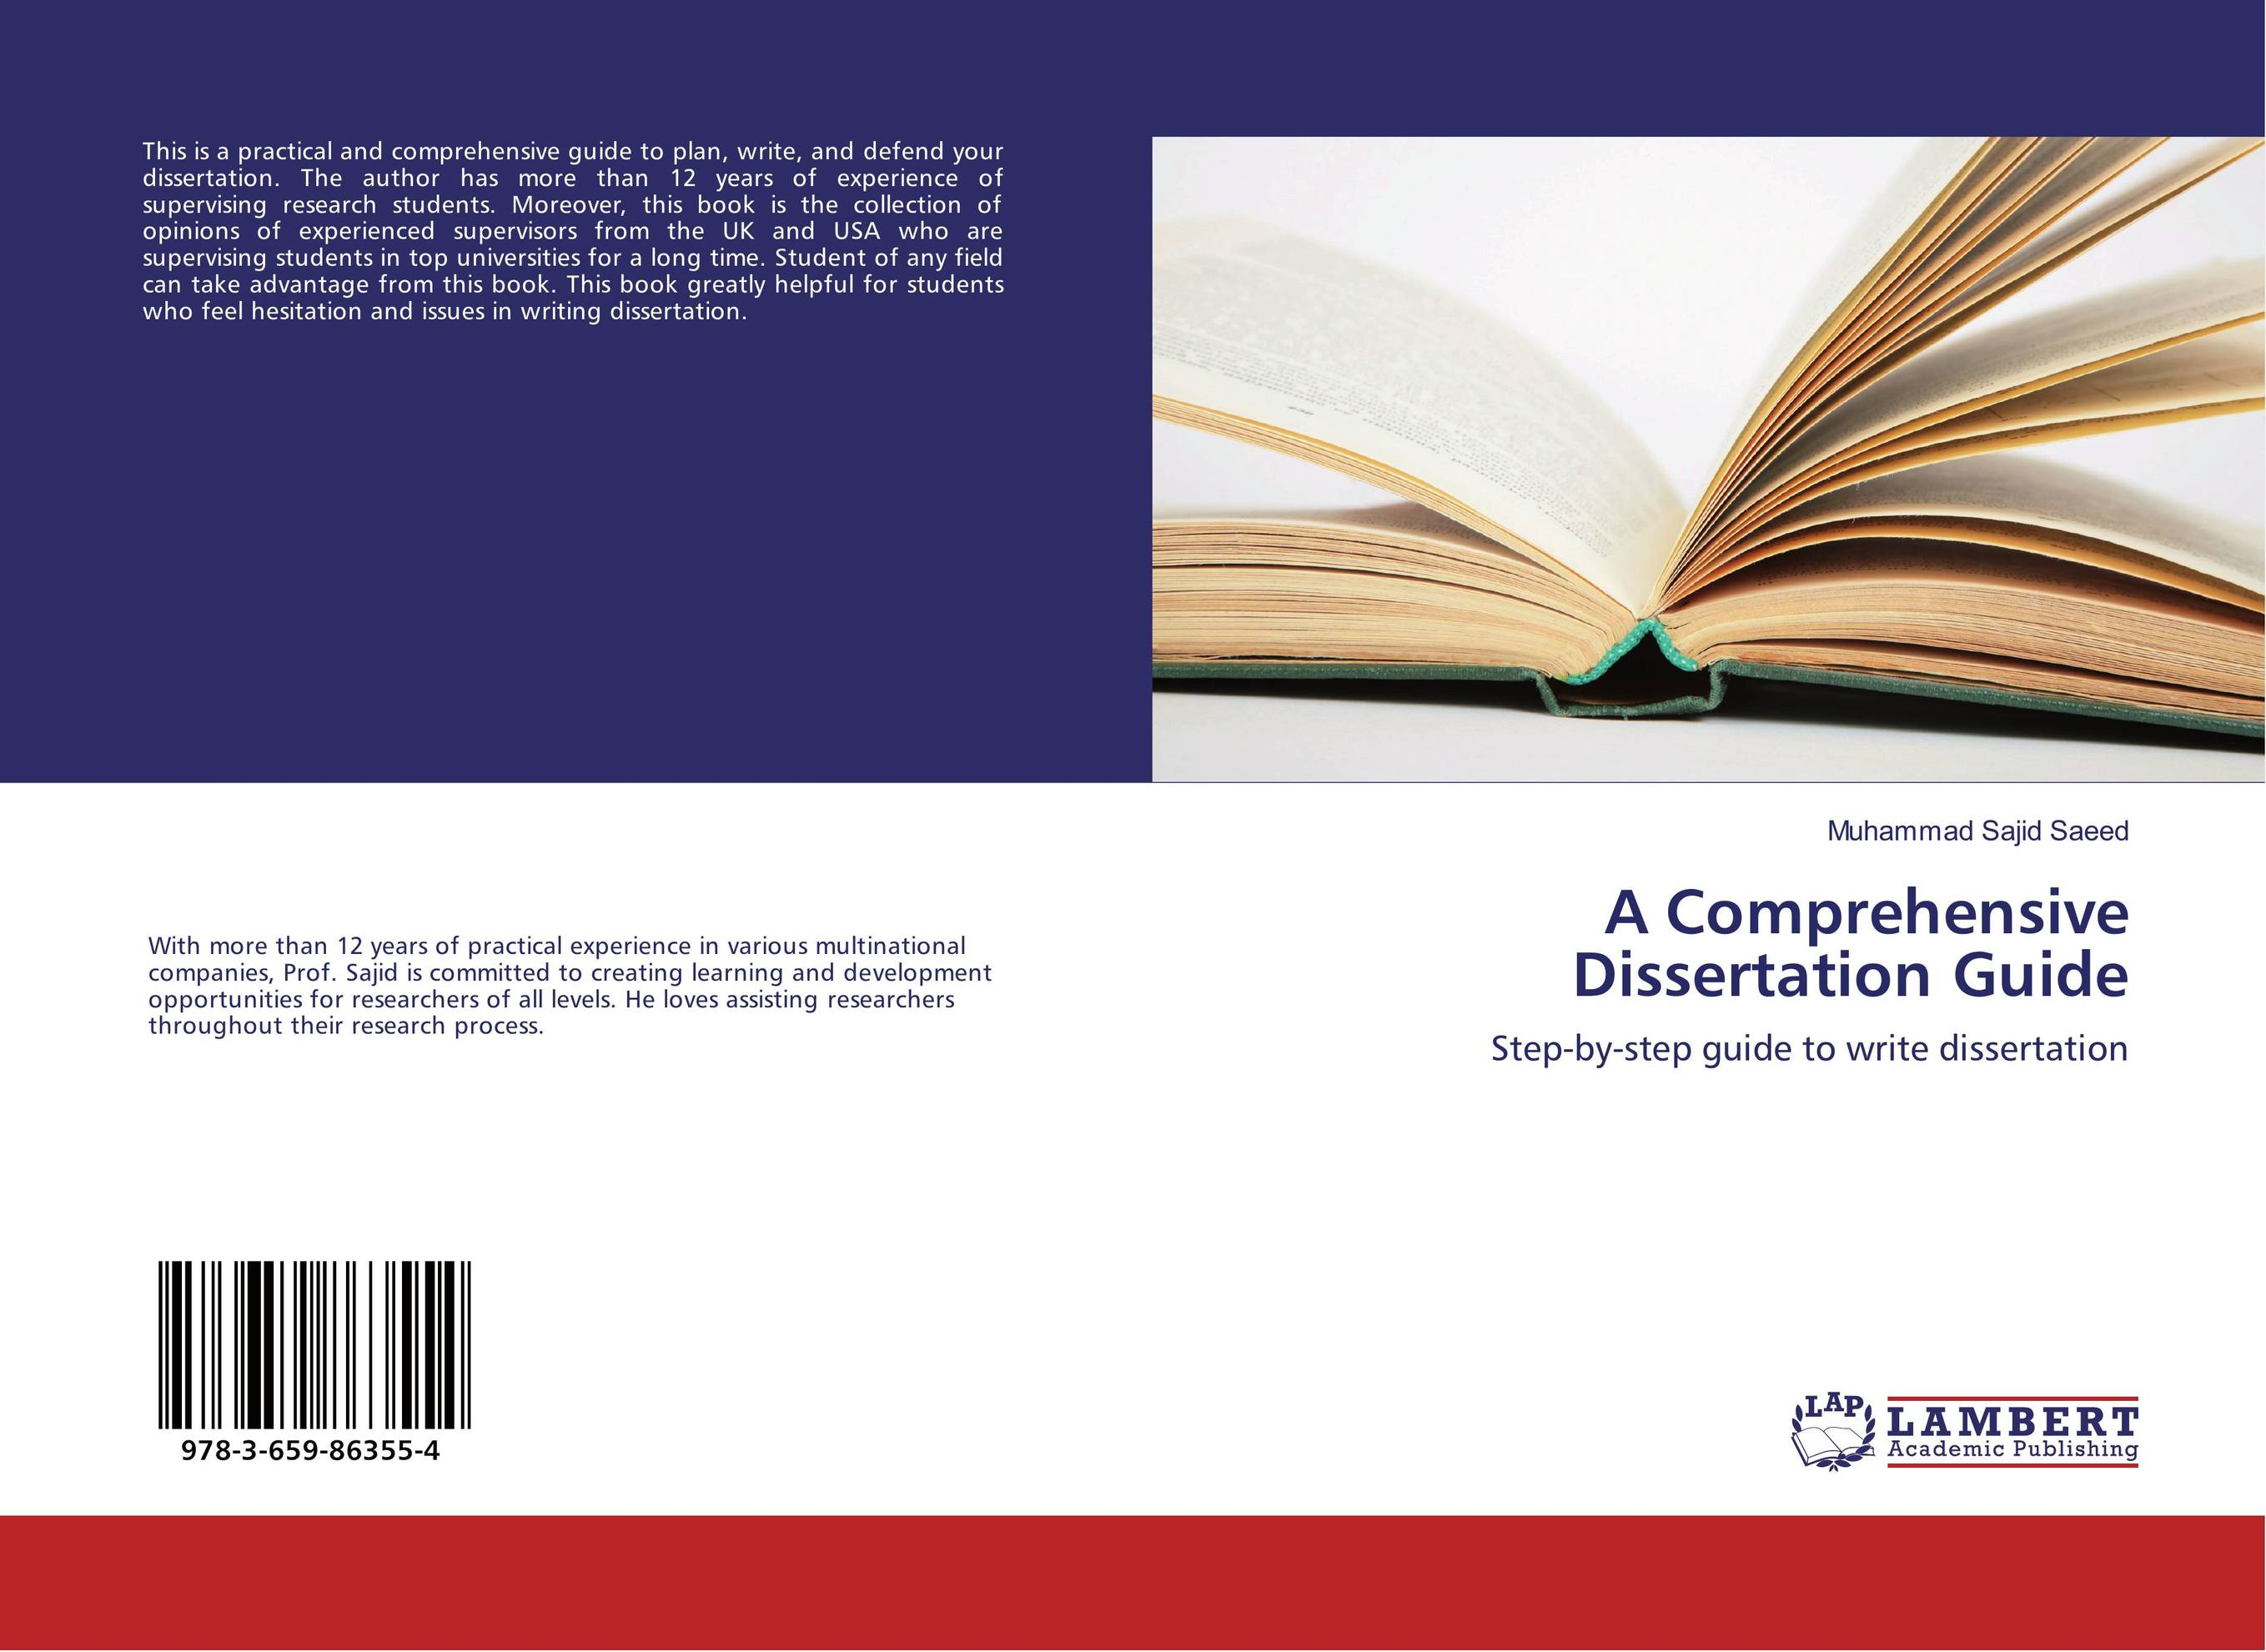 A Comprehensive Dissertation Guide